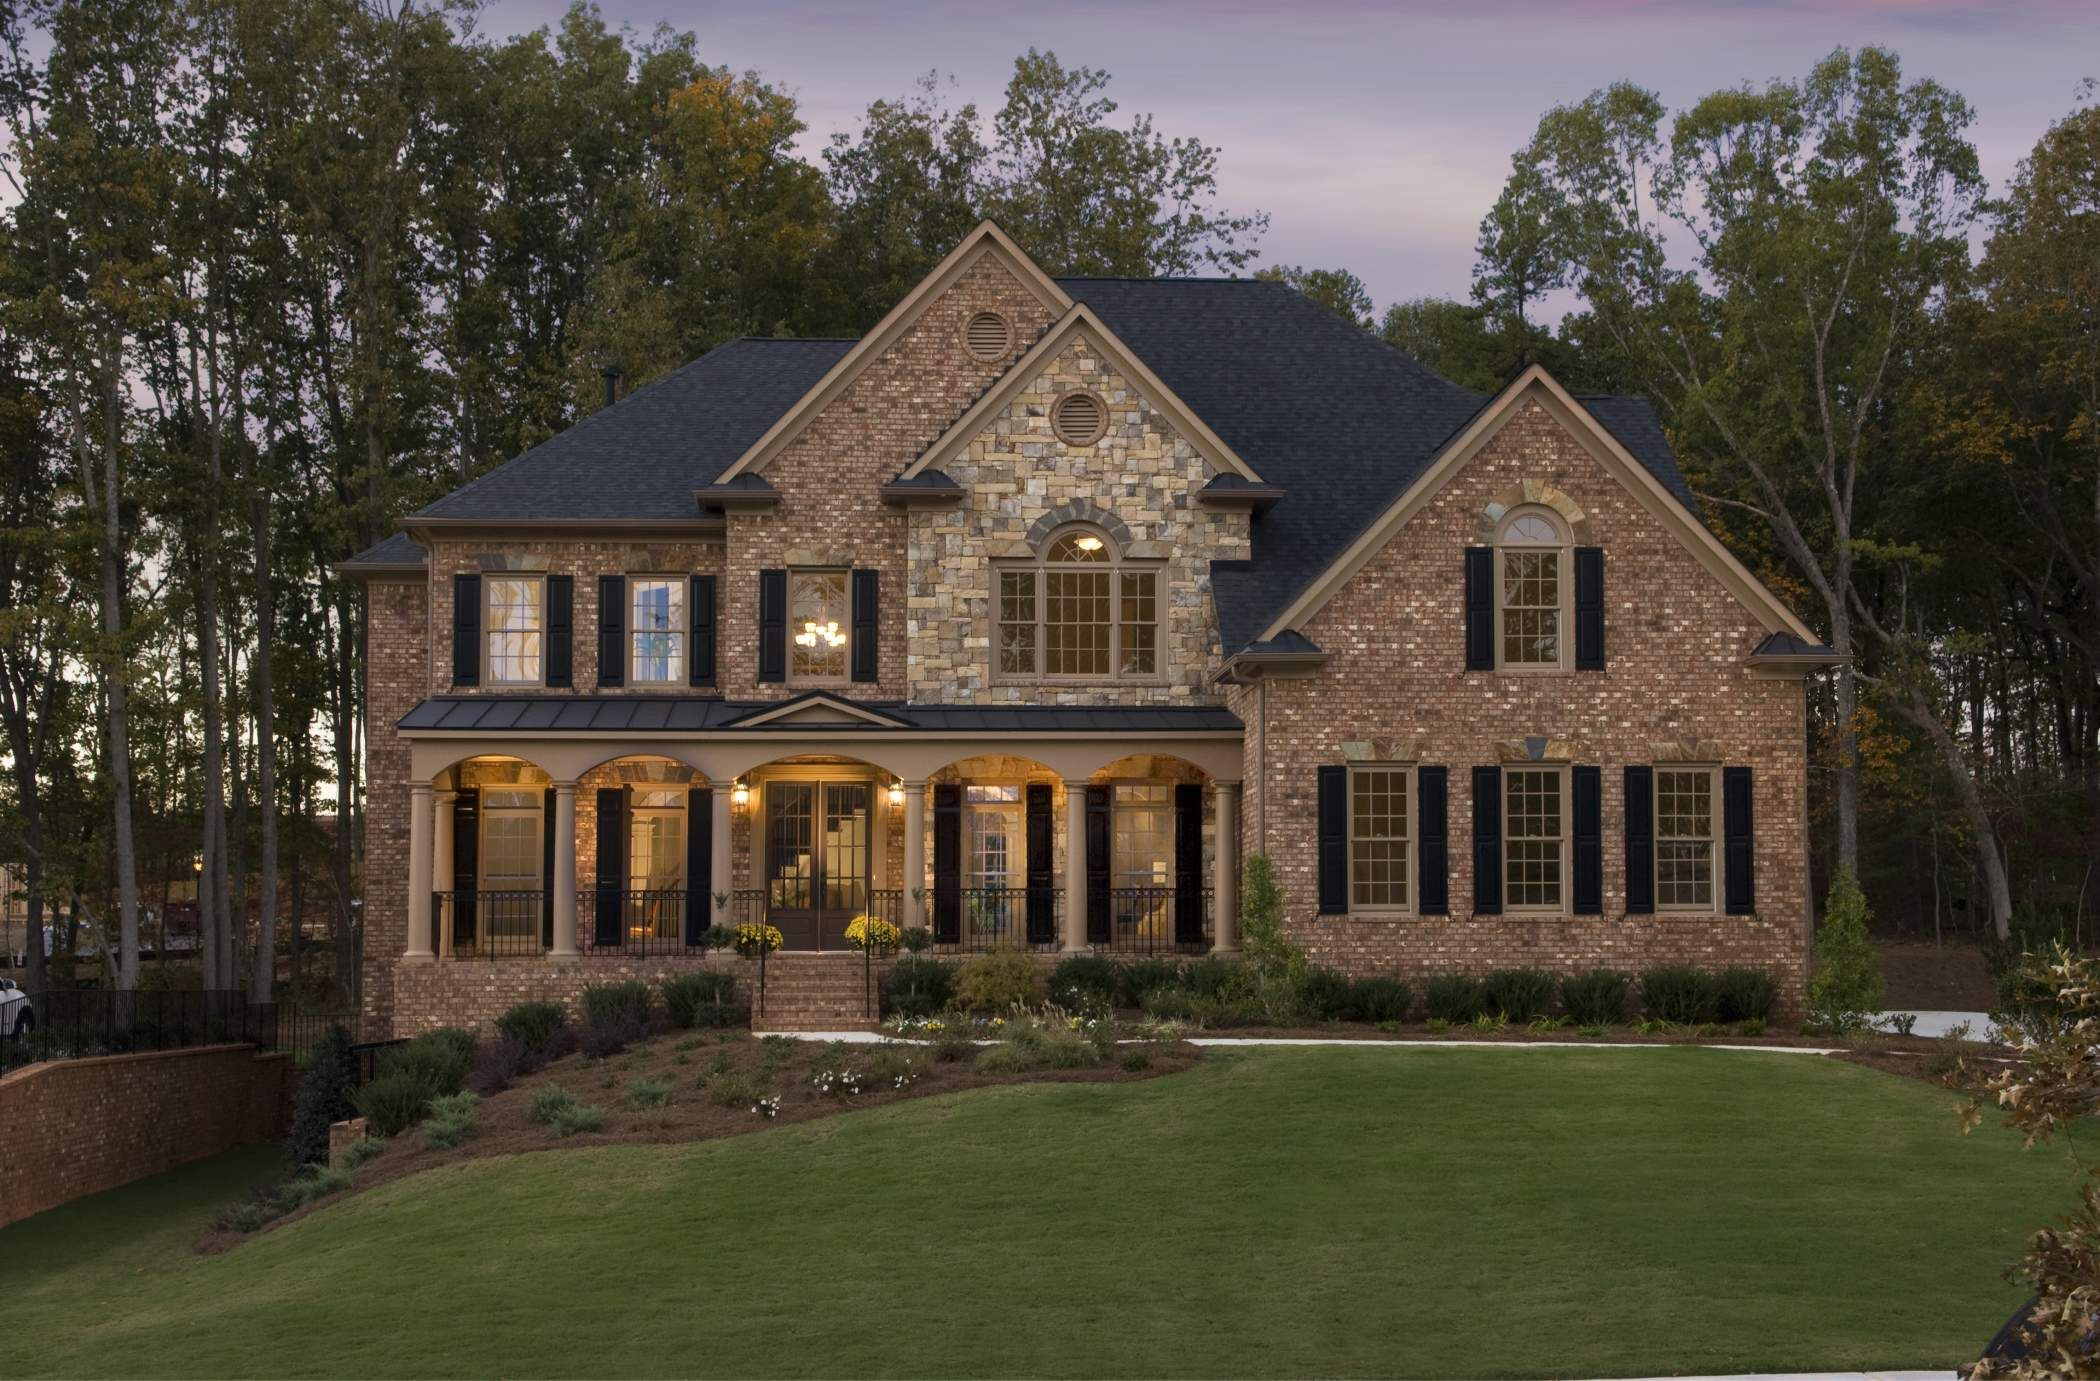 house made out of stone and bricks John Wieland Sale of